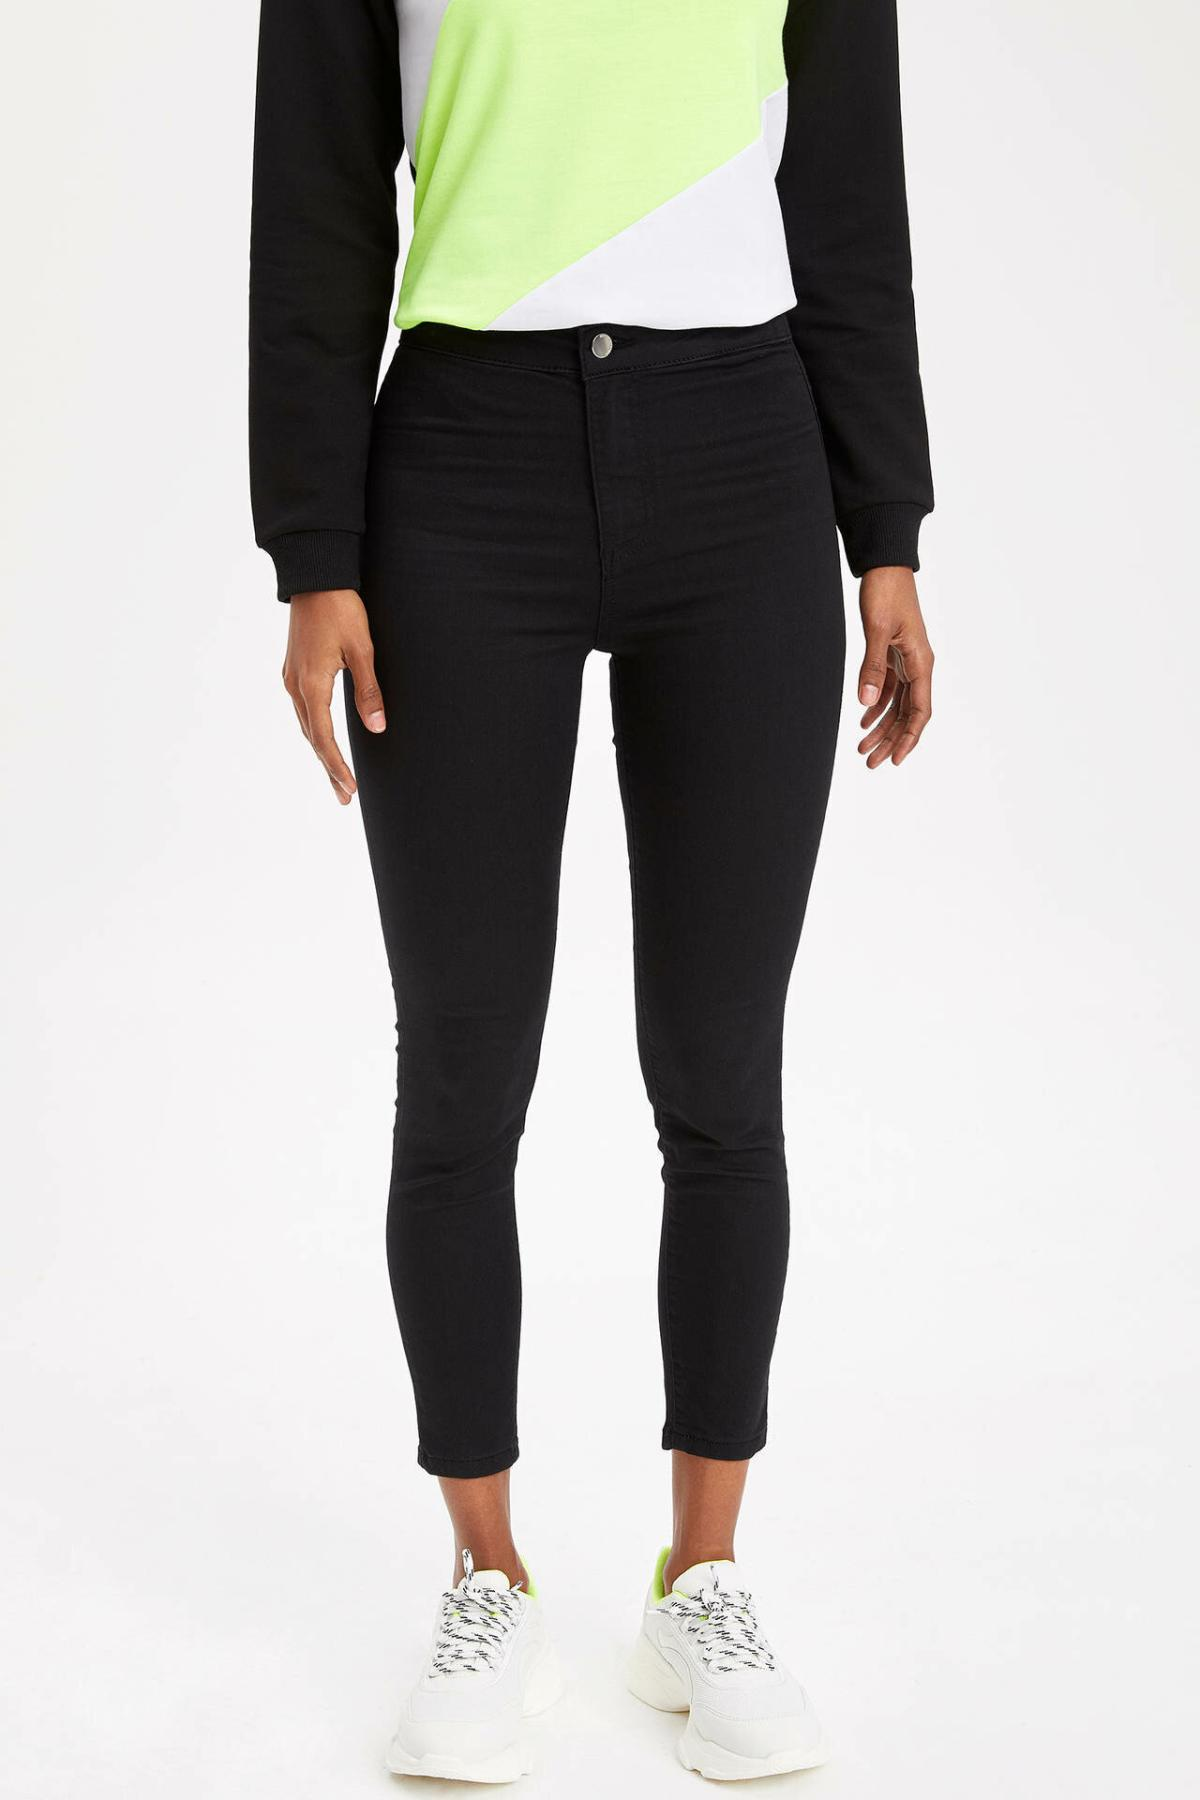 DeFacto Woman Trousers